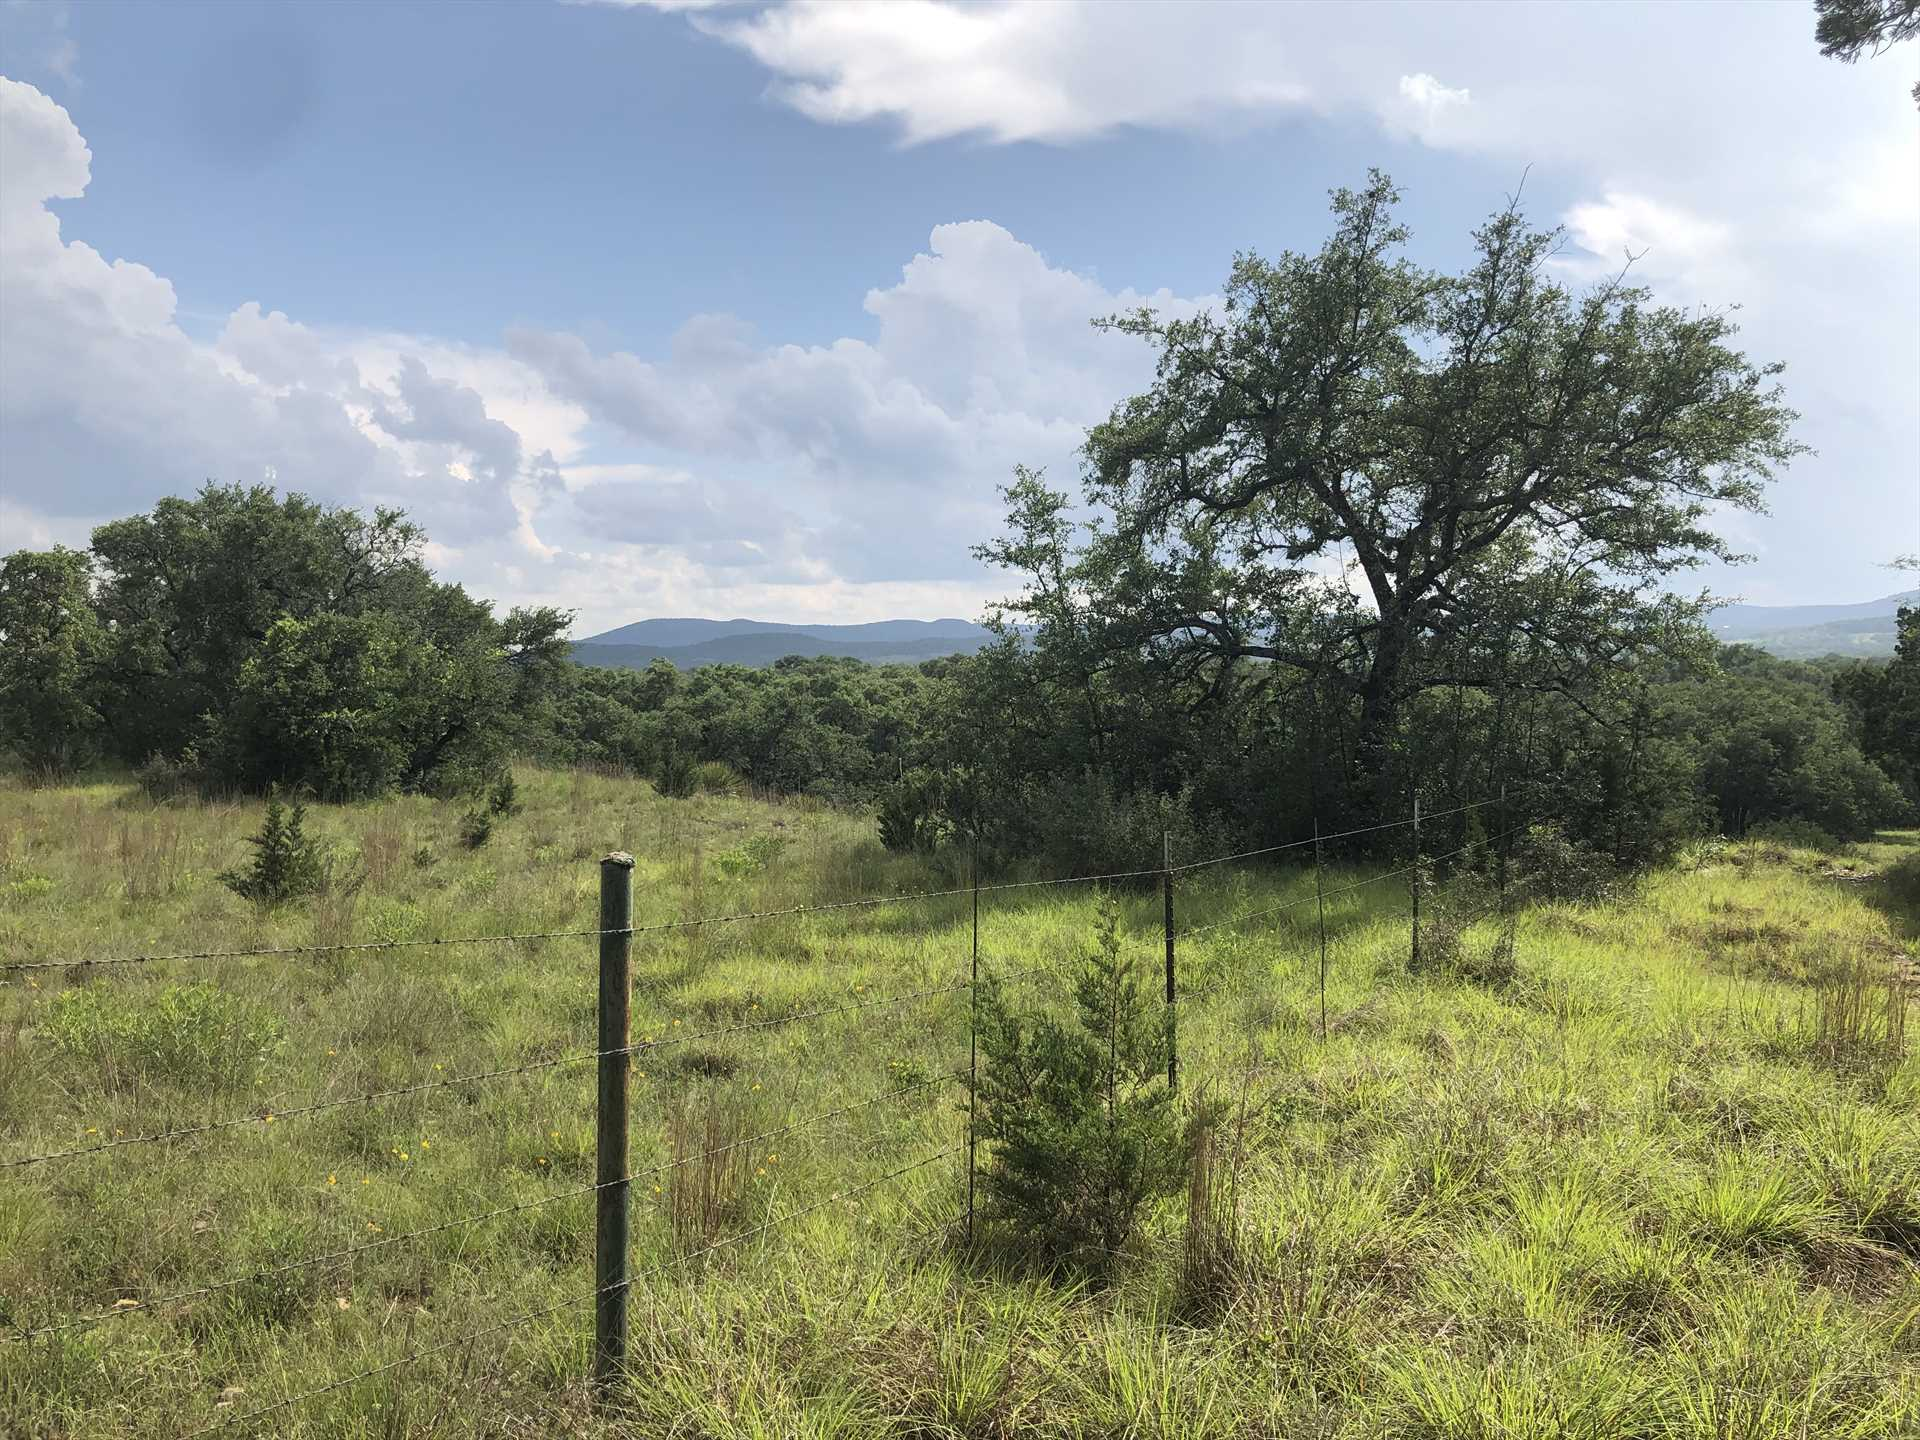 74 acres of virtually untouched Hill Country beauty are yours to explore and enjoy at Kingfisher Ranch!